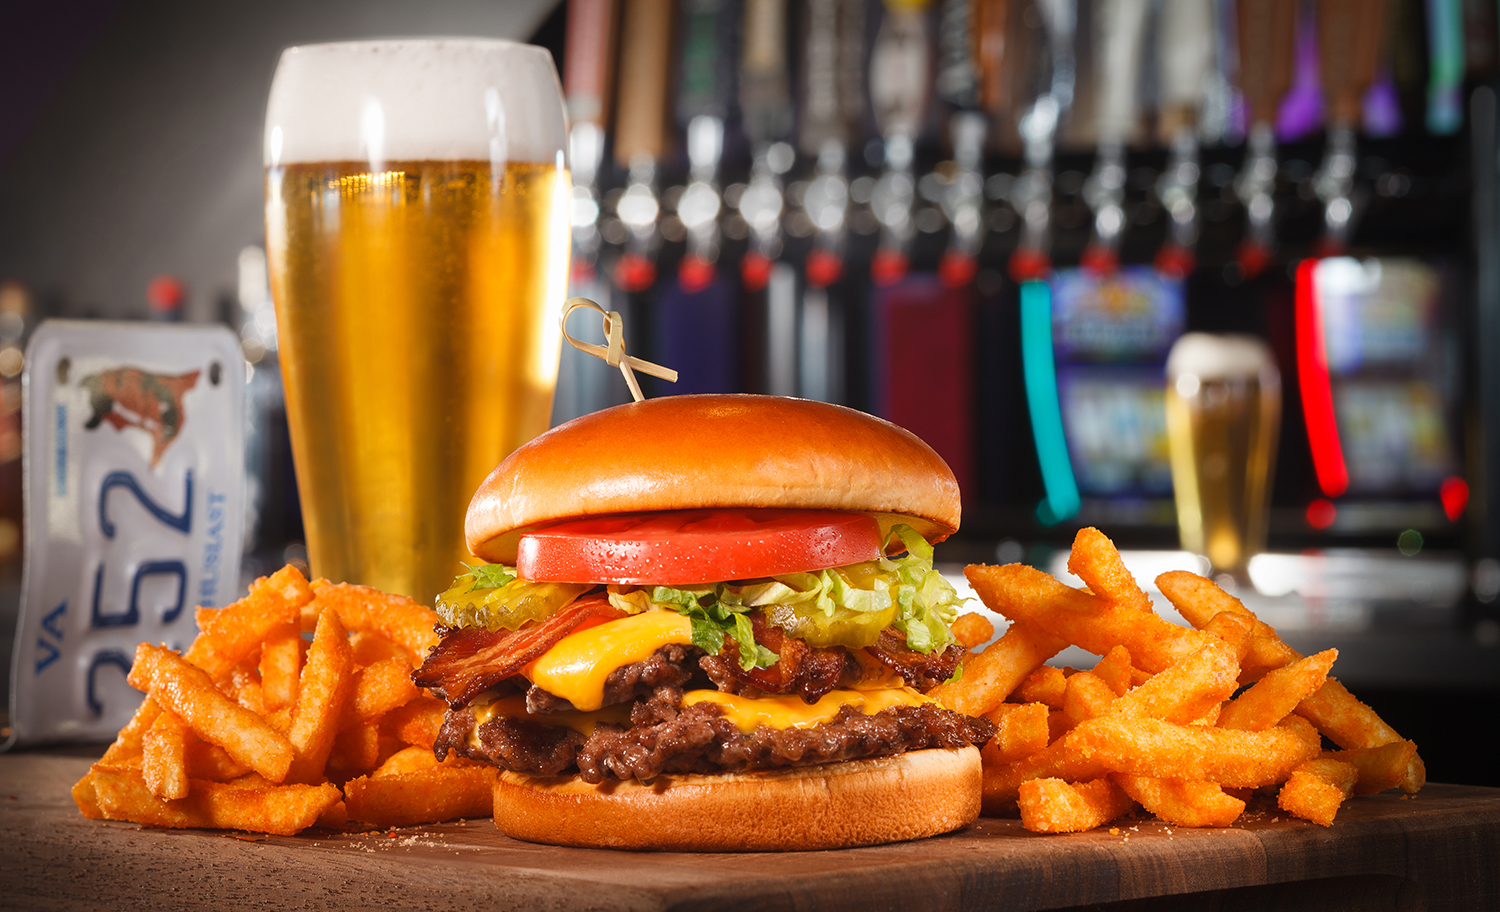 R' Burger, Beer and Fries